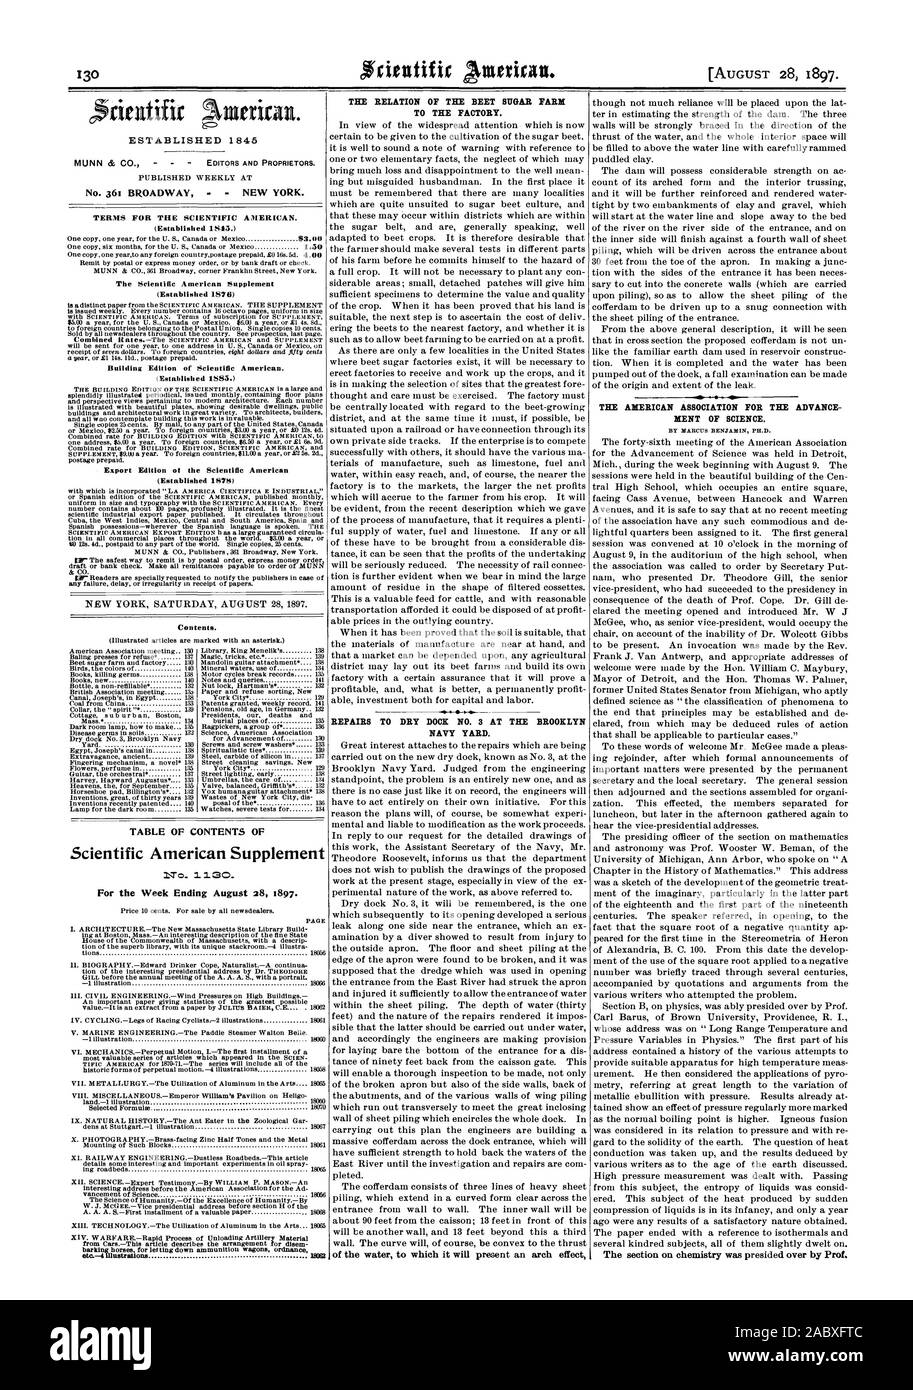 PUBLISHED WEEKLY AT No. 361 BROADWAY  NEW YORK. TERMS FOR THE SCIENTIFIC AMERICAN. (Established 1845.) The Scientific American Supplement (Established 1876) Building Edition of Scientific American. (Established 1885.) Export Edition ot the Scientific American (Established 1S7S) Contents. TABLE OF CONTENTS OF Scientific American Supplement No  30. For the Week Ending August 28 1897. THE RELATION OF THE BEET SUGAR FARM TO THE FACTORY. REPAIRS TO DRY DOCK NO. 3 AT THE BROOKLYN NAVY YARD. of the water to which it will present an arch effect THE AMERICAN ASSOCIATION FOR THE ADVANCE MENT OF SCIENCE Stock Photo